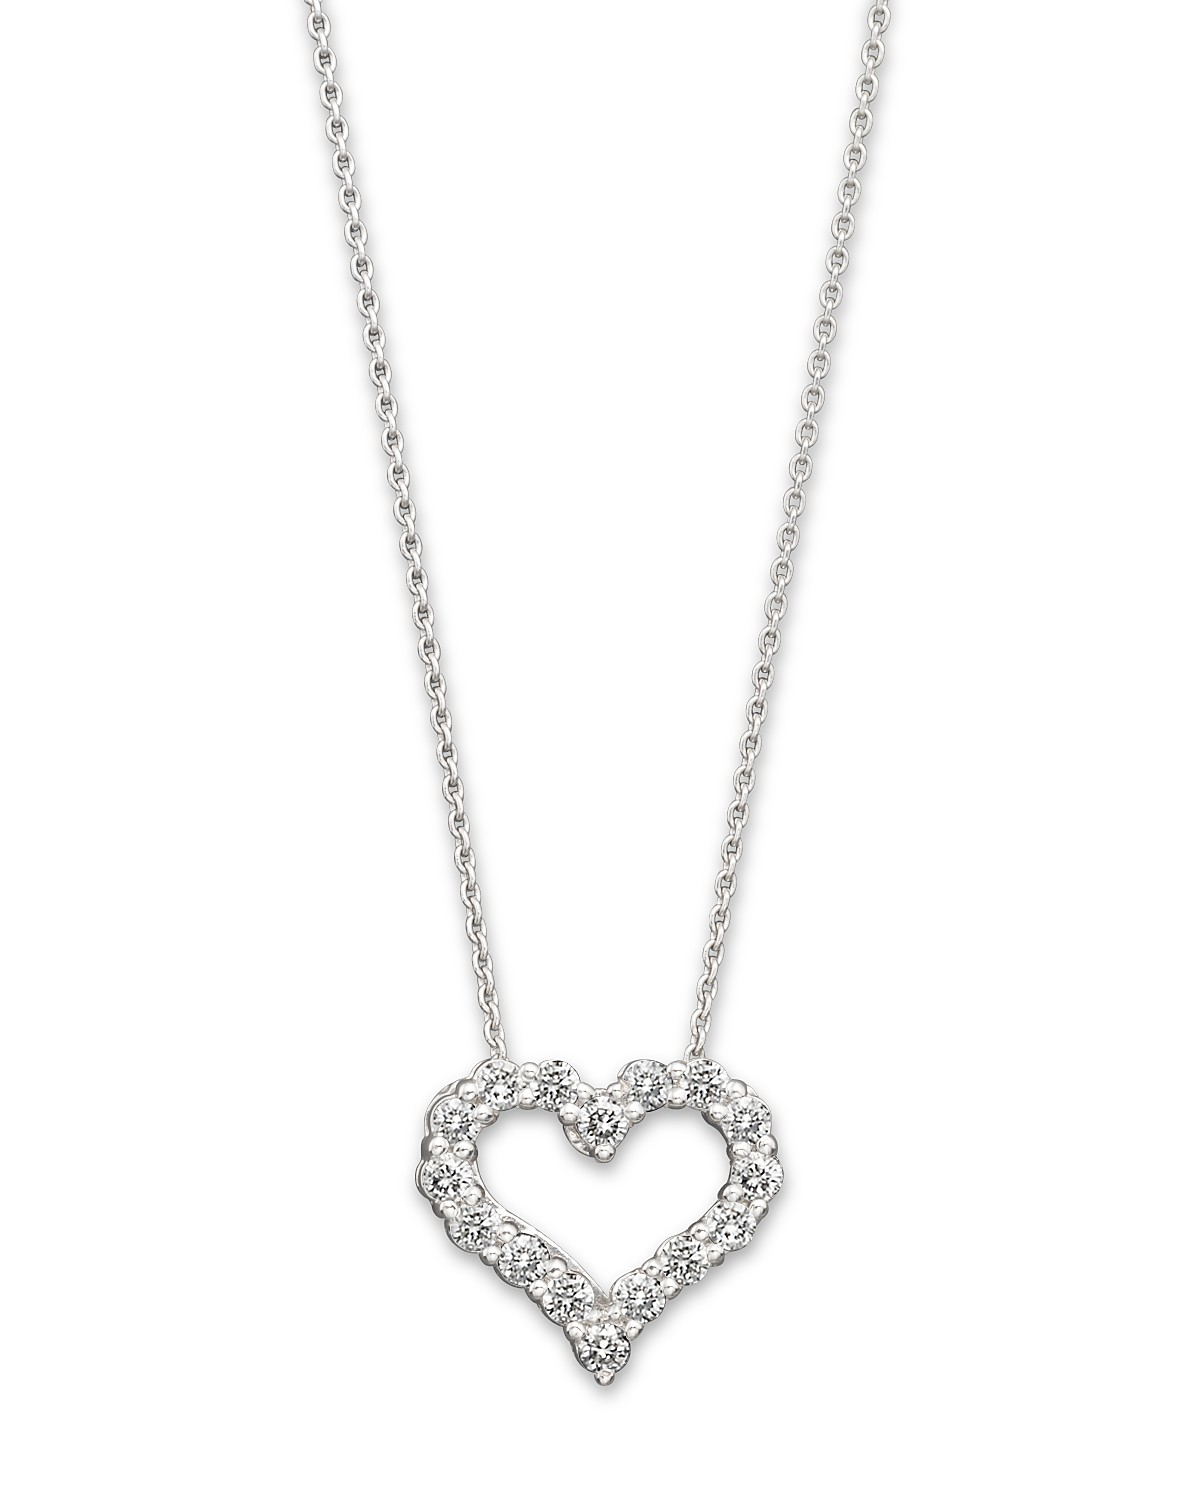 Diamond heart pendant necklace in 14k white gold 25 ct tw pdpimgshortdescription pdpimgshortdescription pdpimgshortdescription aloadofball Choice Image